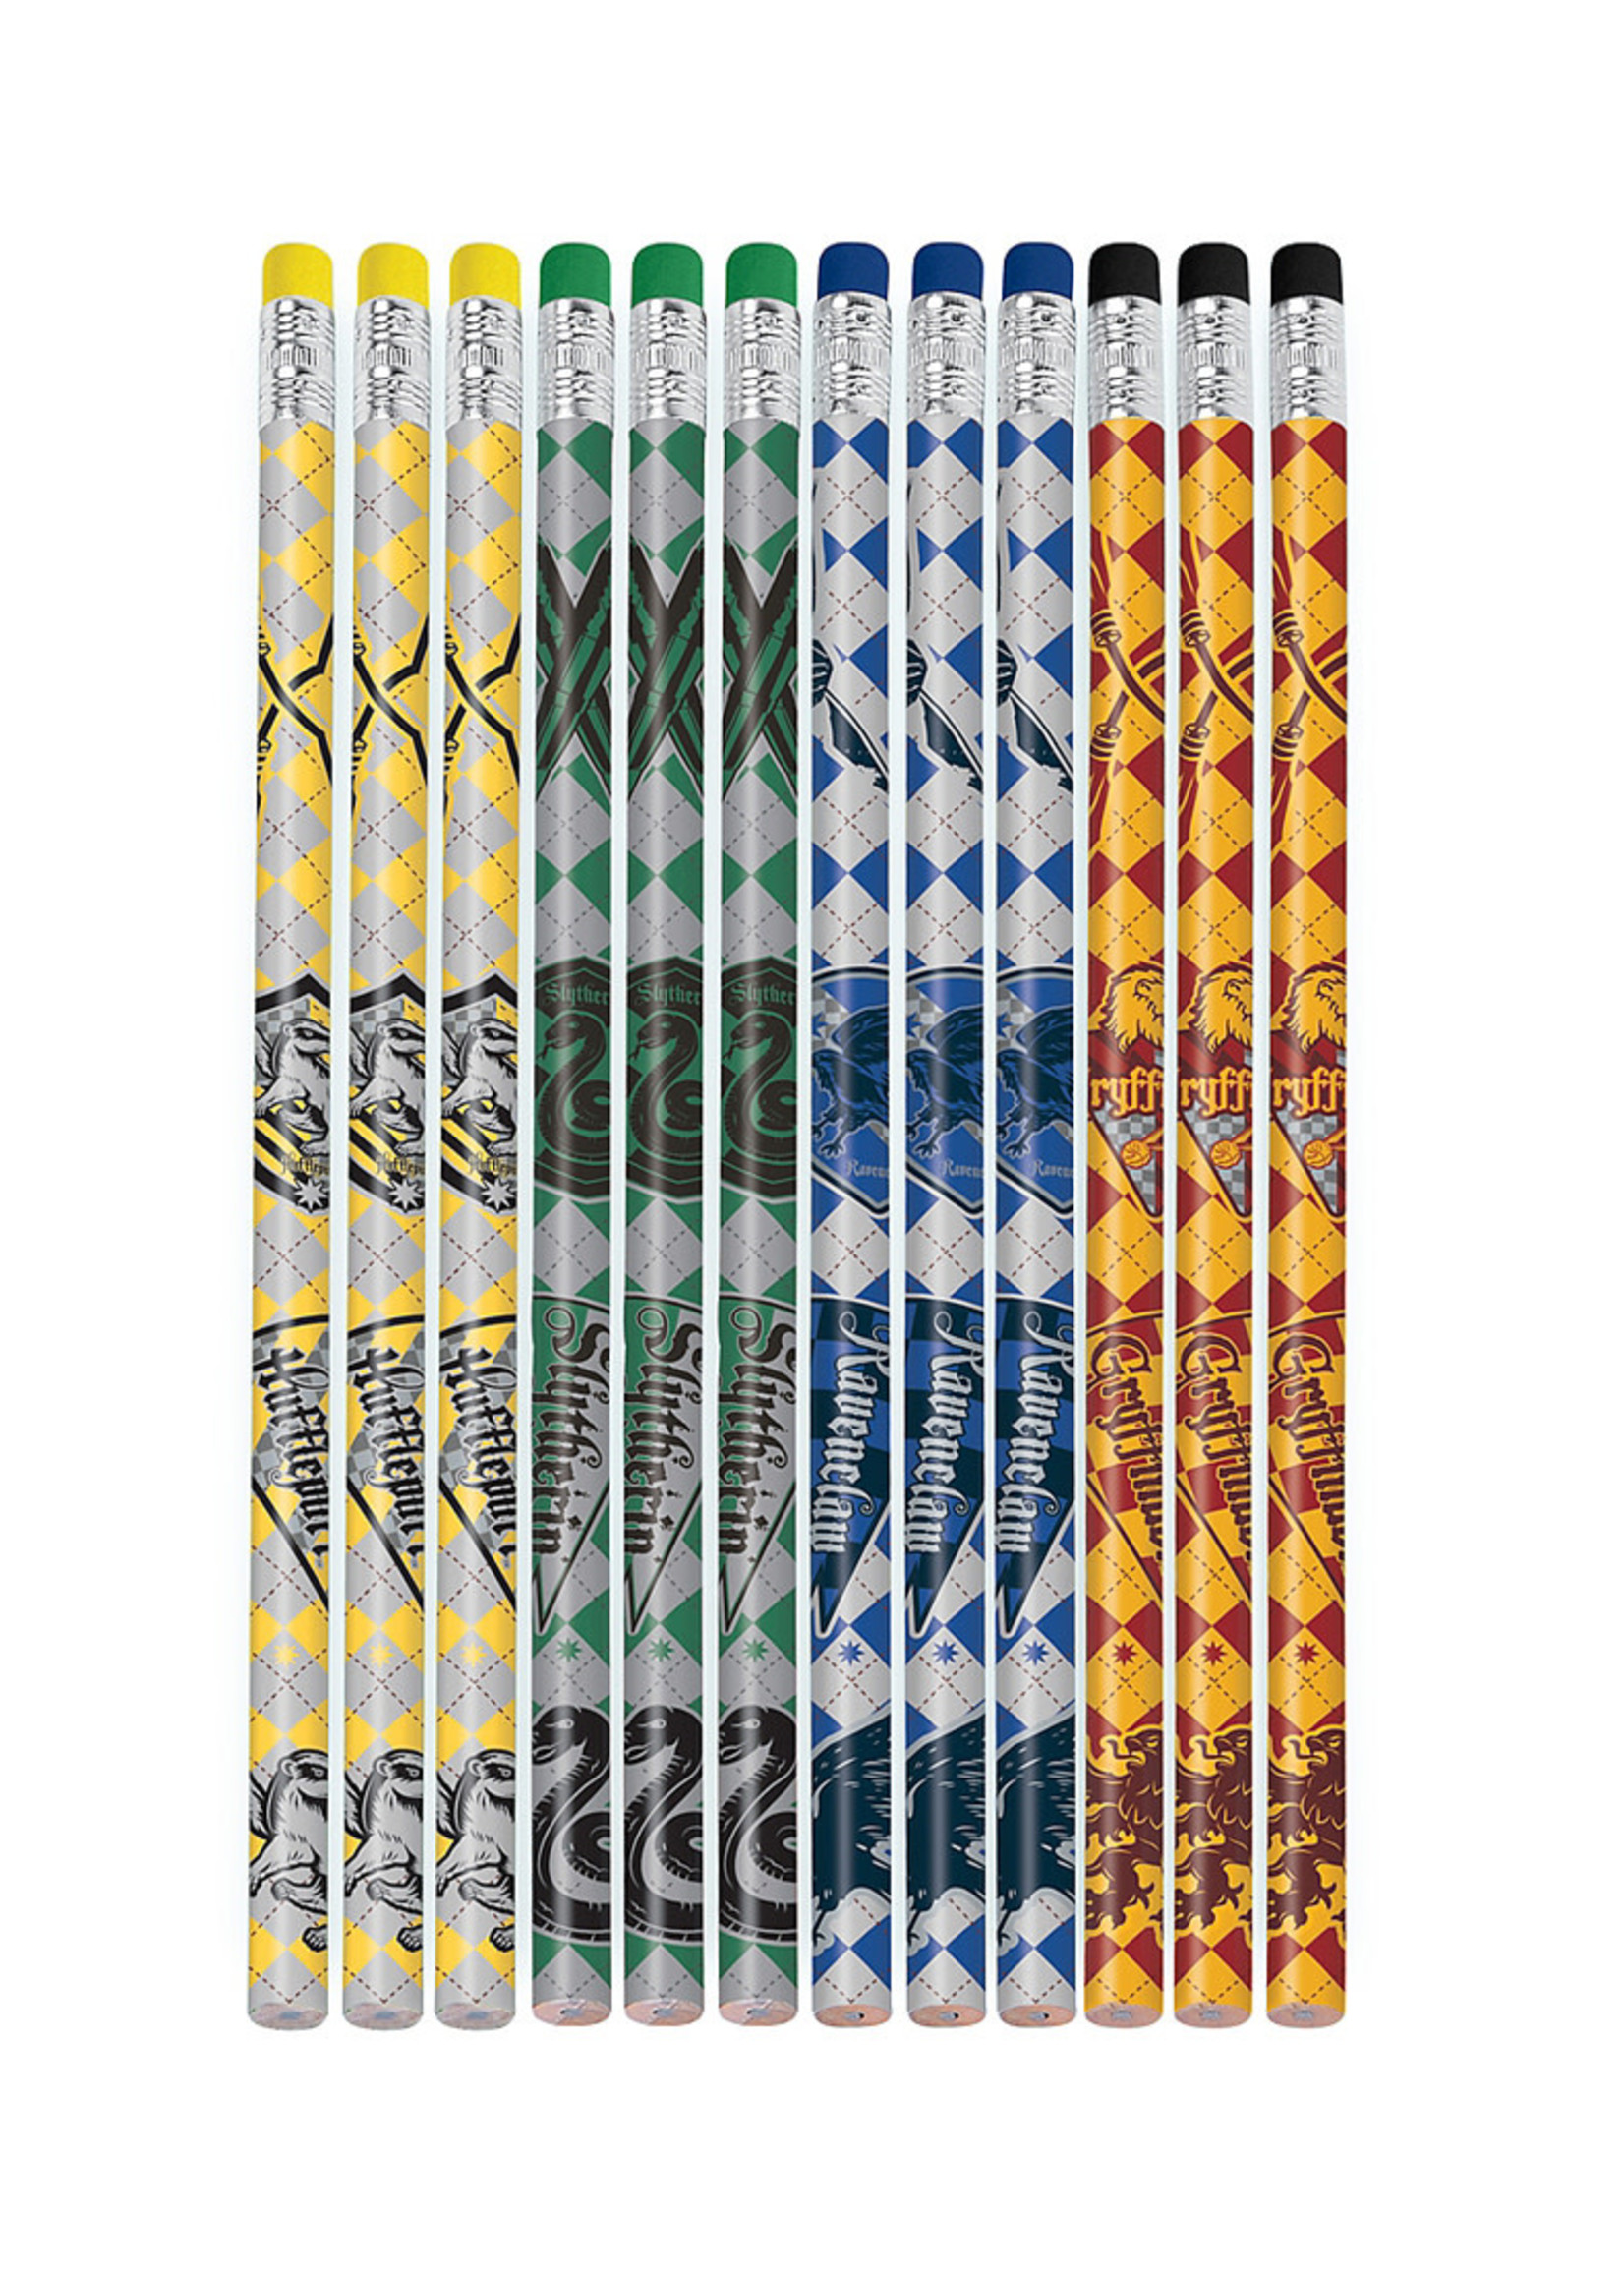 Harry Potter Pencils 12ct